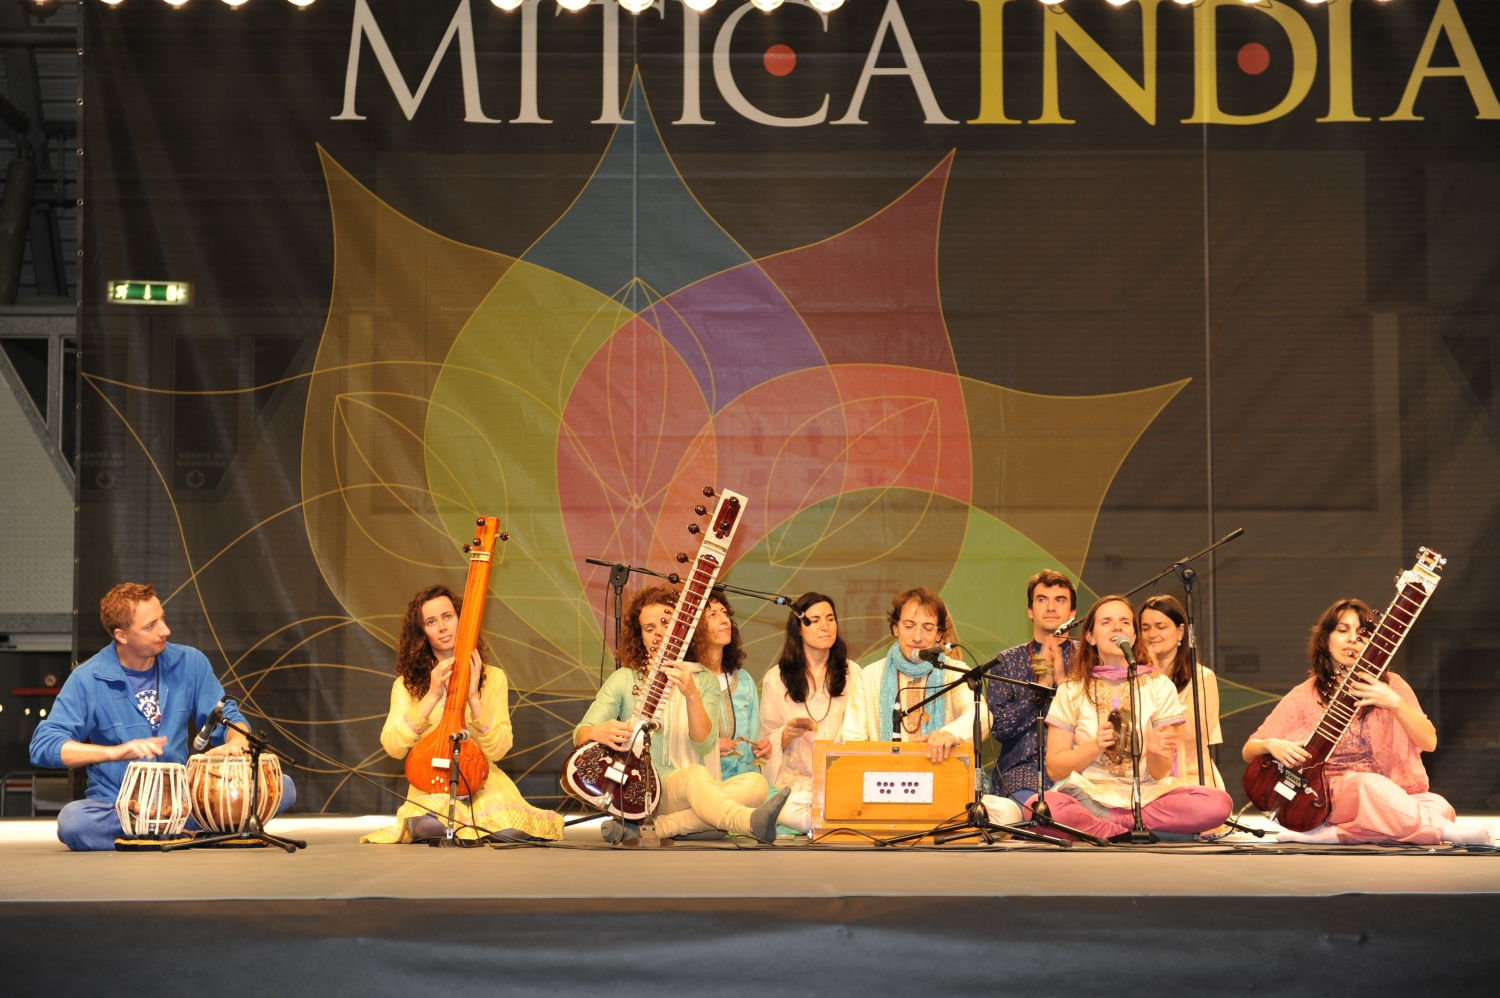 Mittica India, Carrara, Italie - 2010, mars